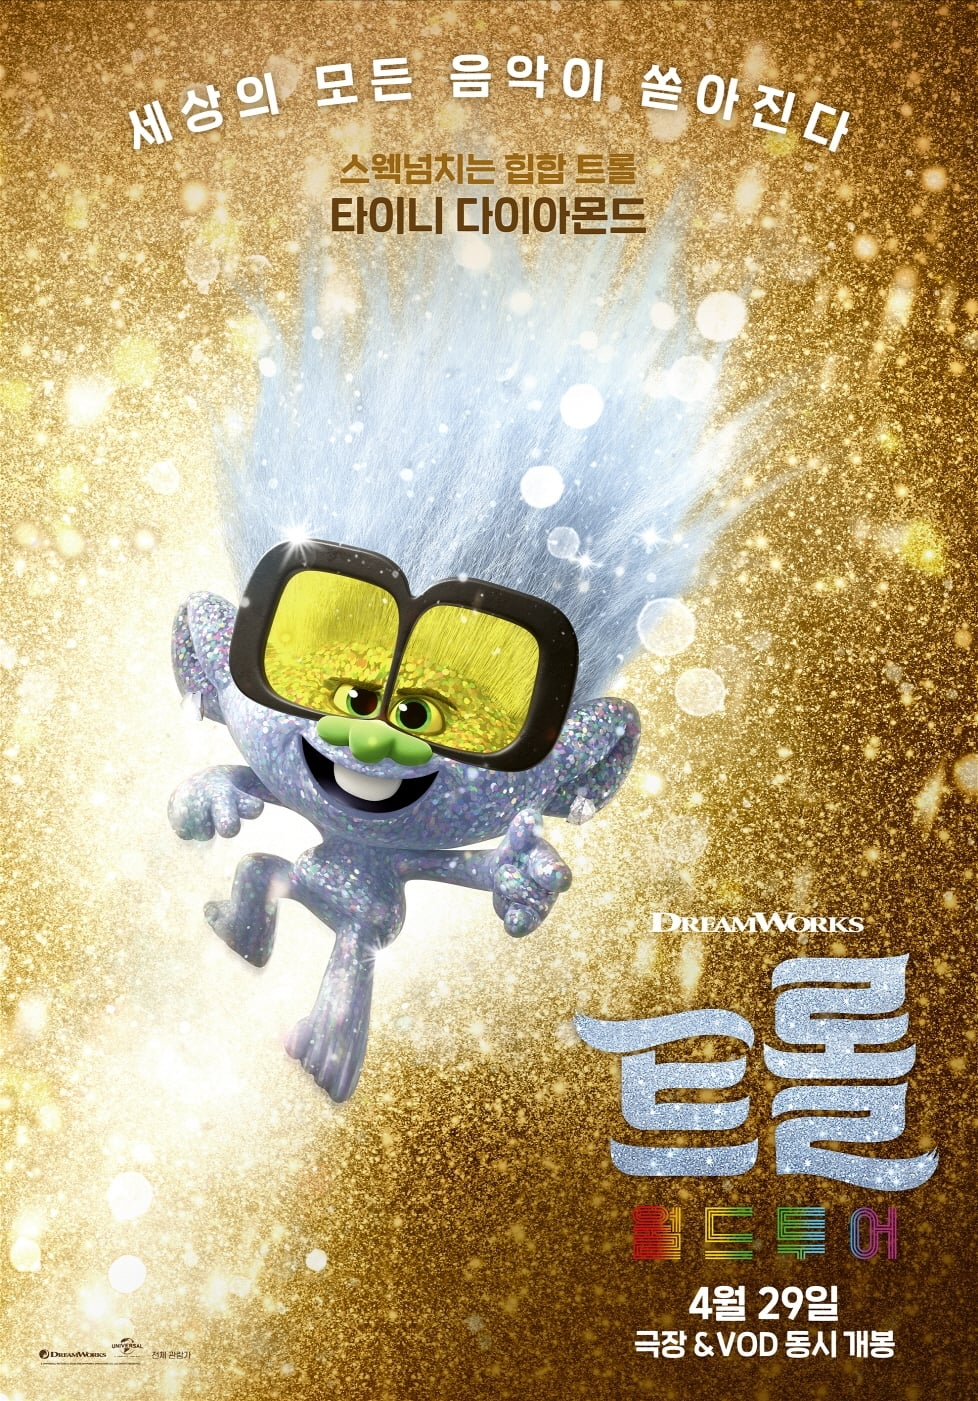 Poster and image movie Trolls World Tour